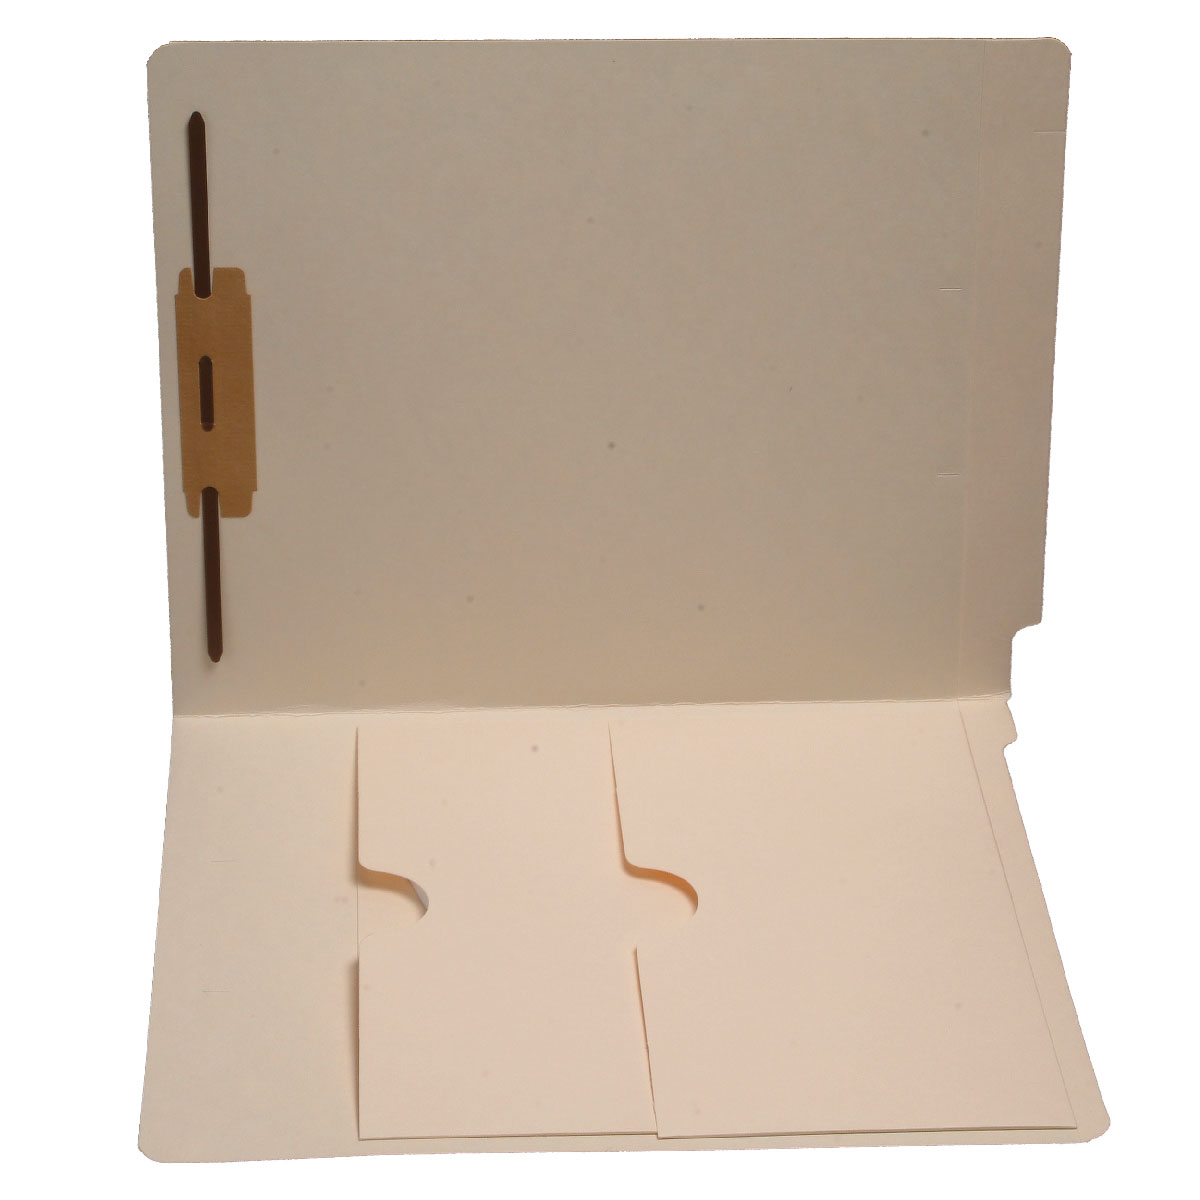 S-9063 - 11 pt Manila Folders, Full Cut End Tab, Letter Size, Double Pockets Inside Front, Fastener Pos #1 (Box of 50)